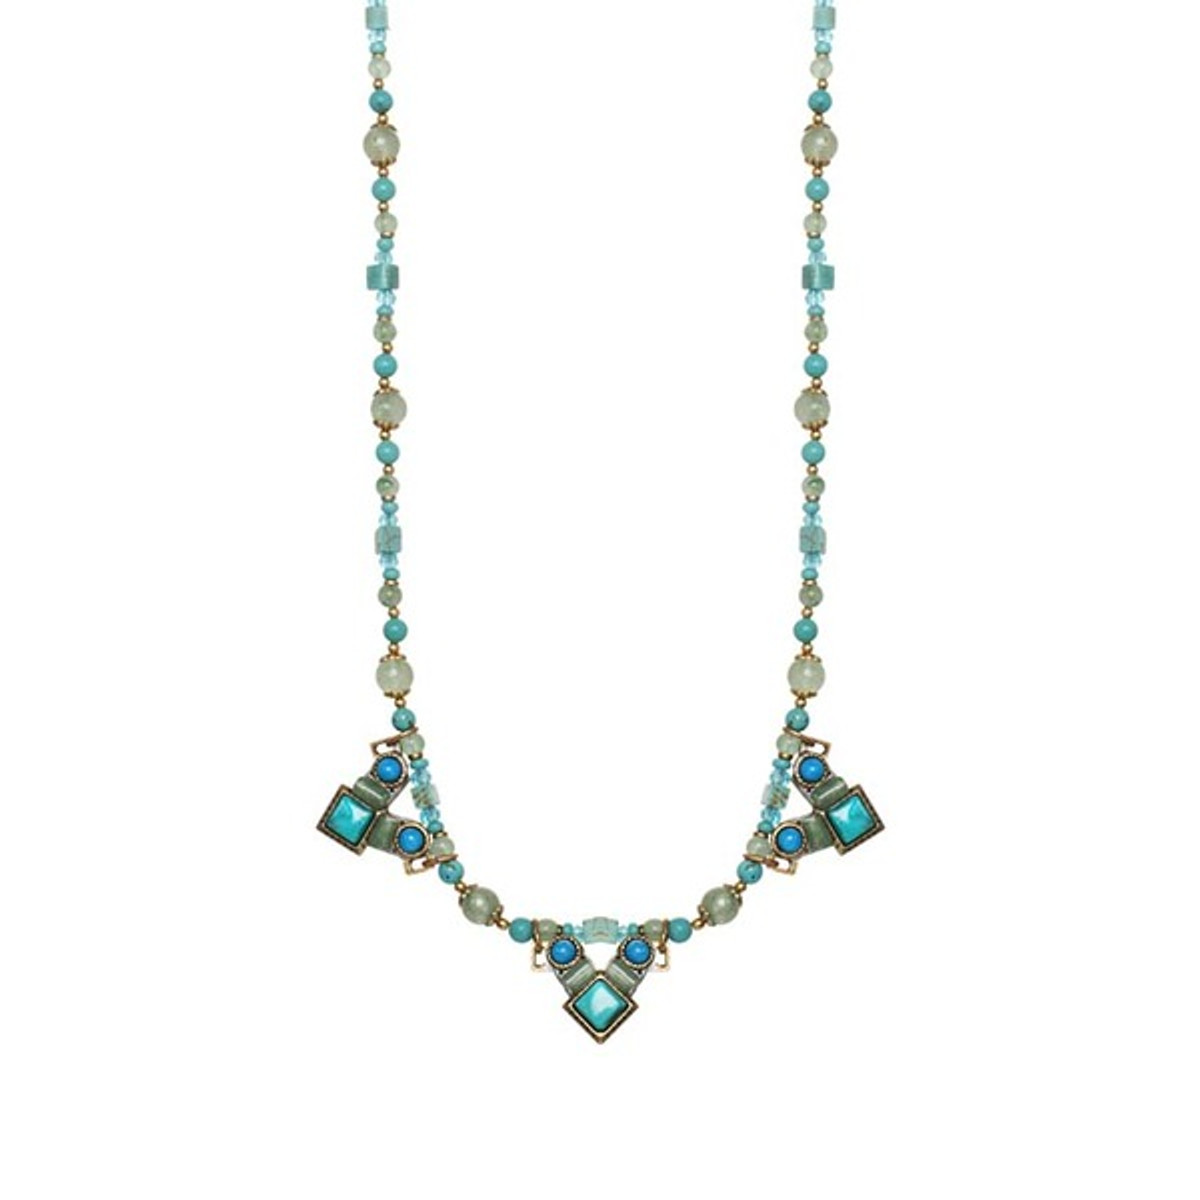 Nile Necklace by Golan Michal